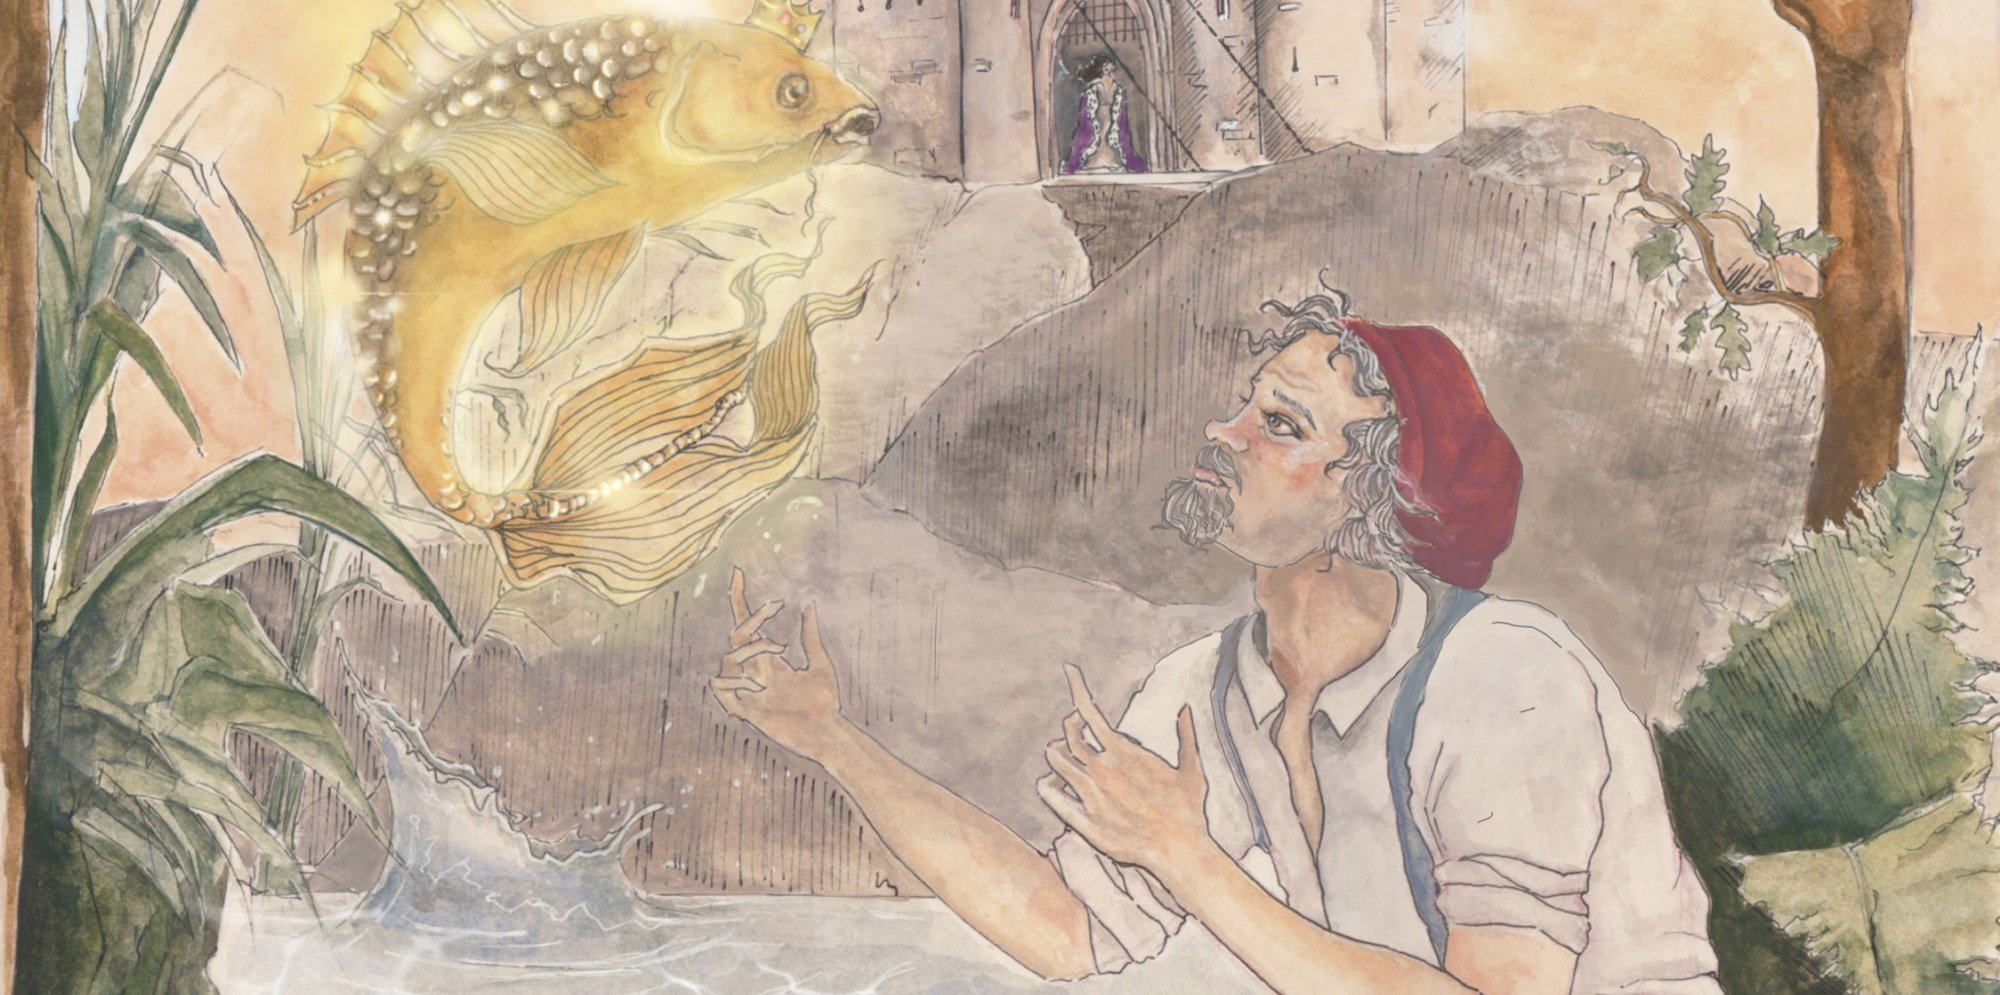 an illustration of a man in a woodland, looking up to see a golden glowing fish. In the background is a house with a woman in front of it.